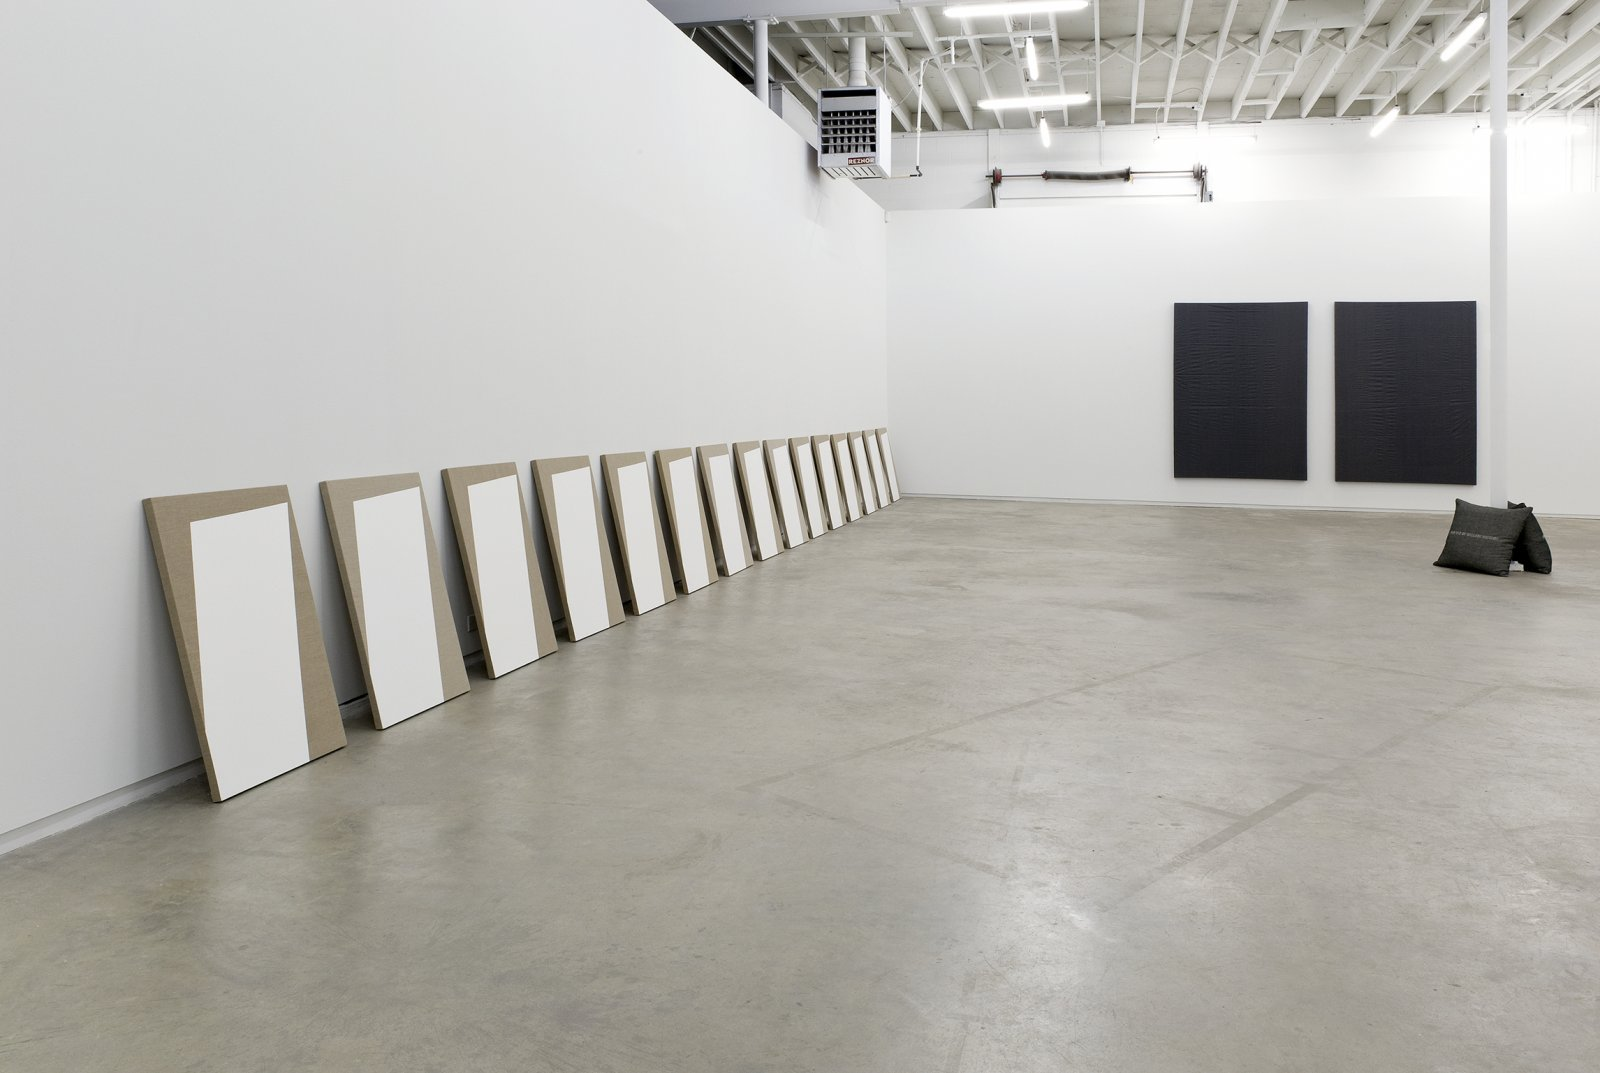 ​Arabella Campbell, installation view, Catriona Jeffries, 2011 by